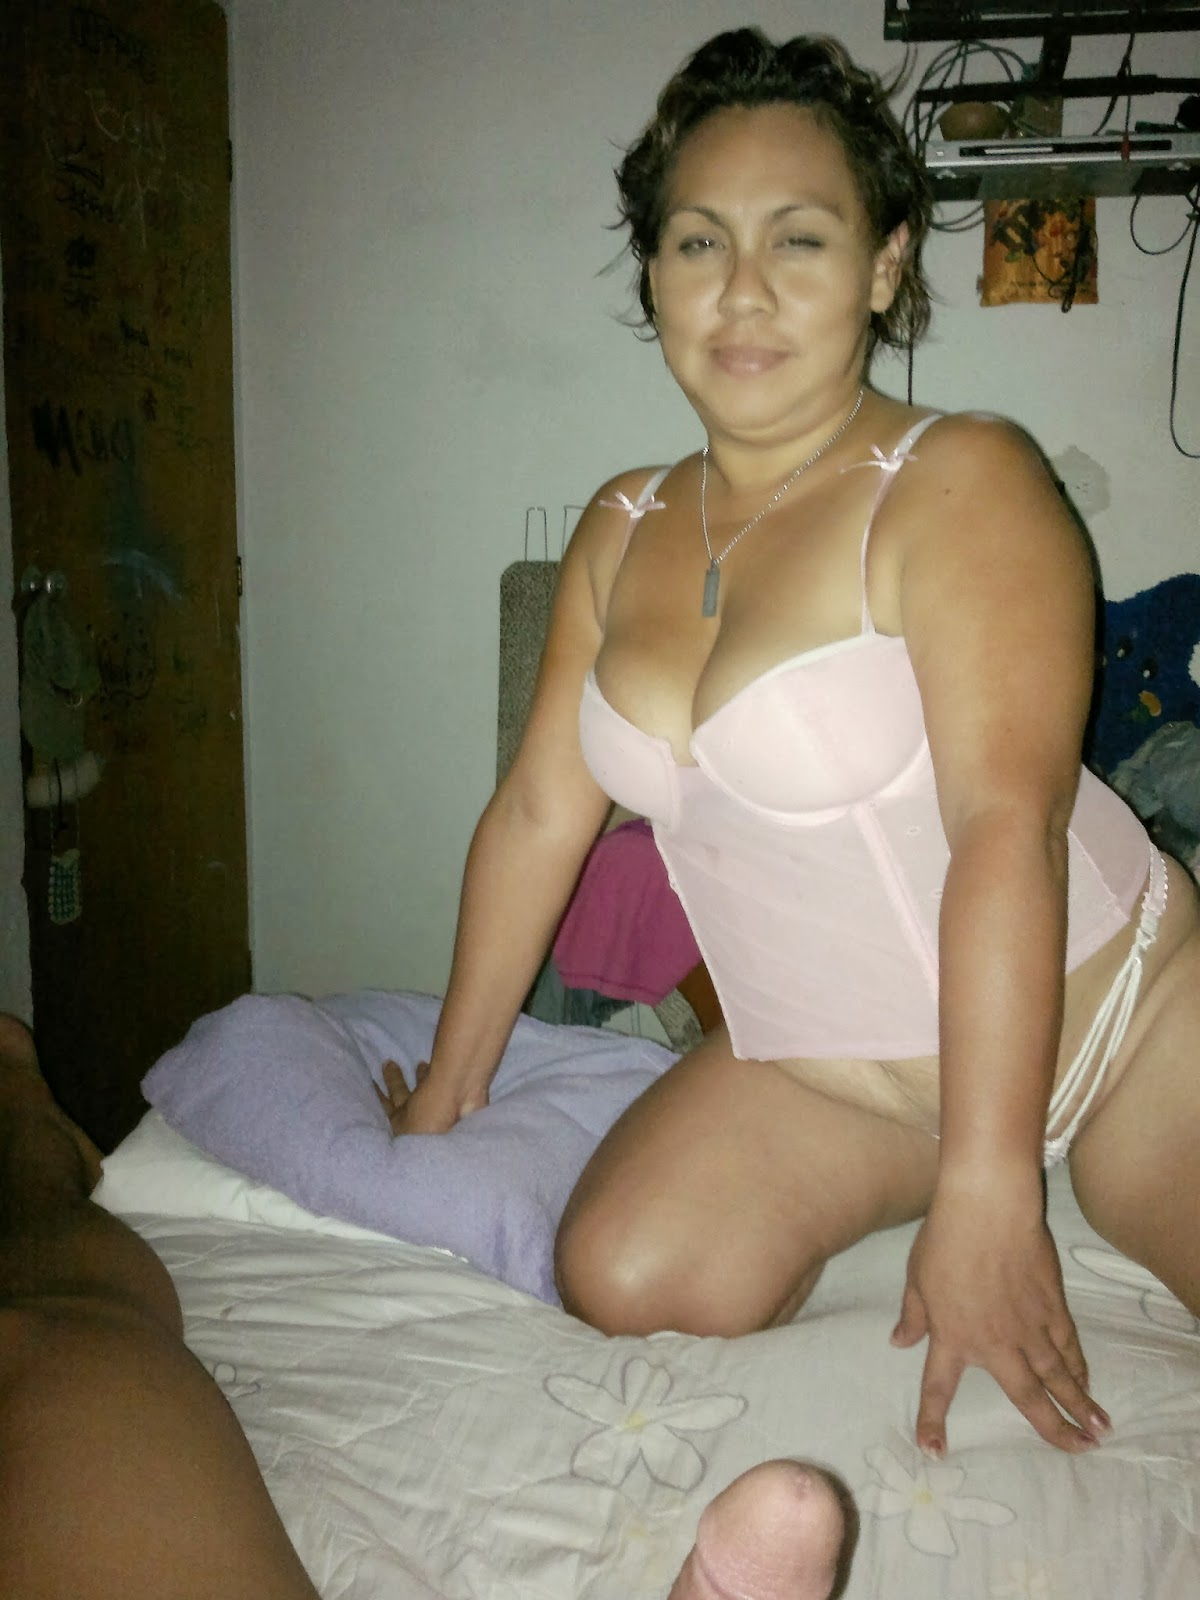 videos xx prostitutas prostitutas folladoras